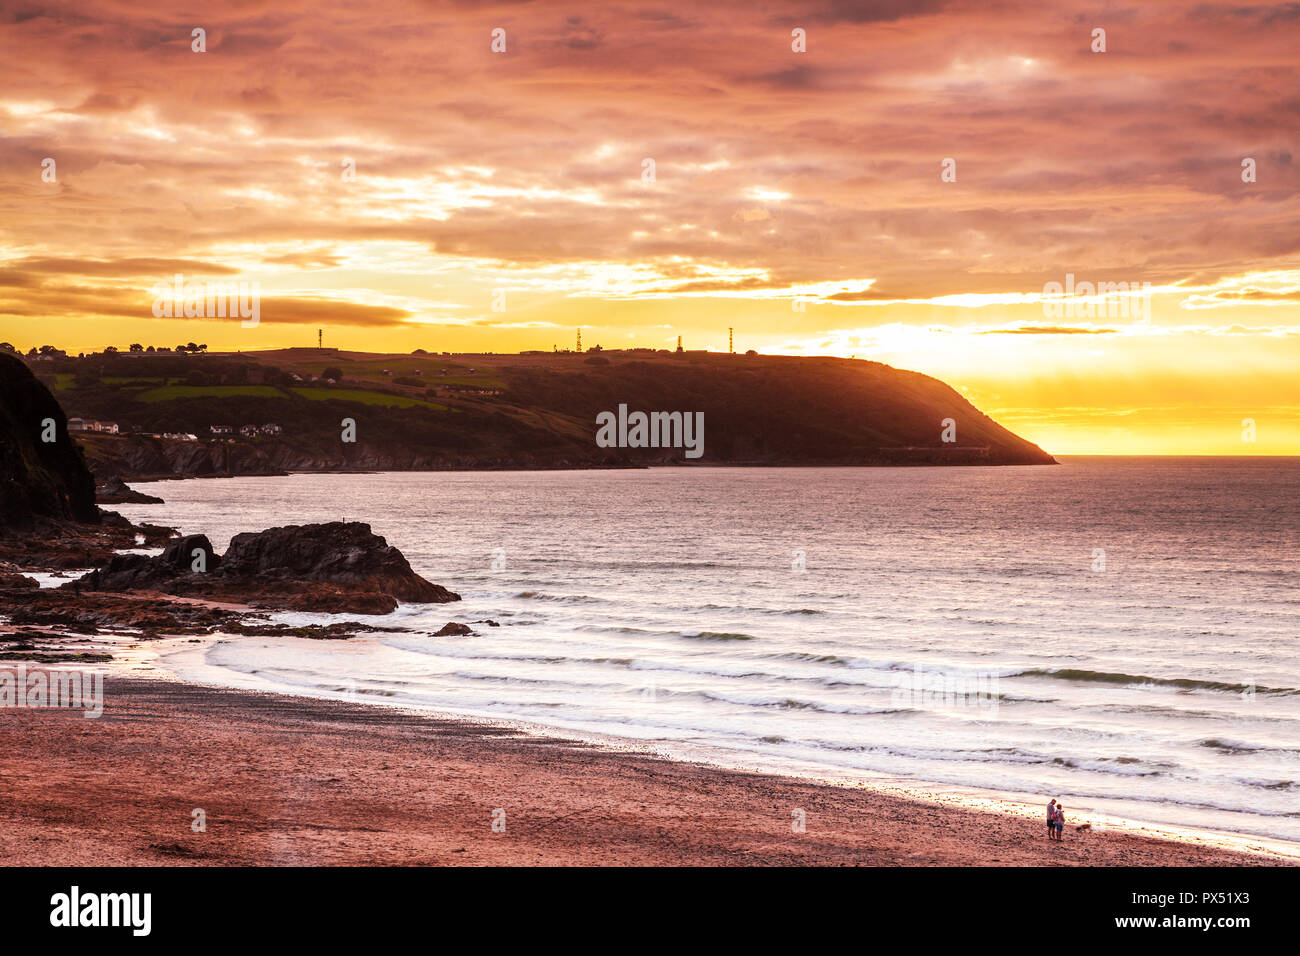 Sunset over the beach at Tresaith in Ceredigion, Wales. - Stock Image